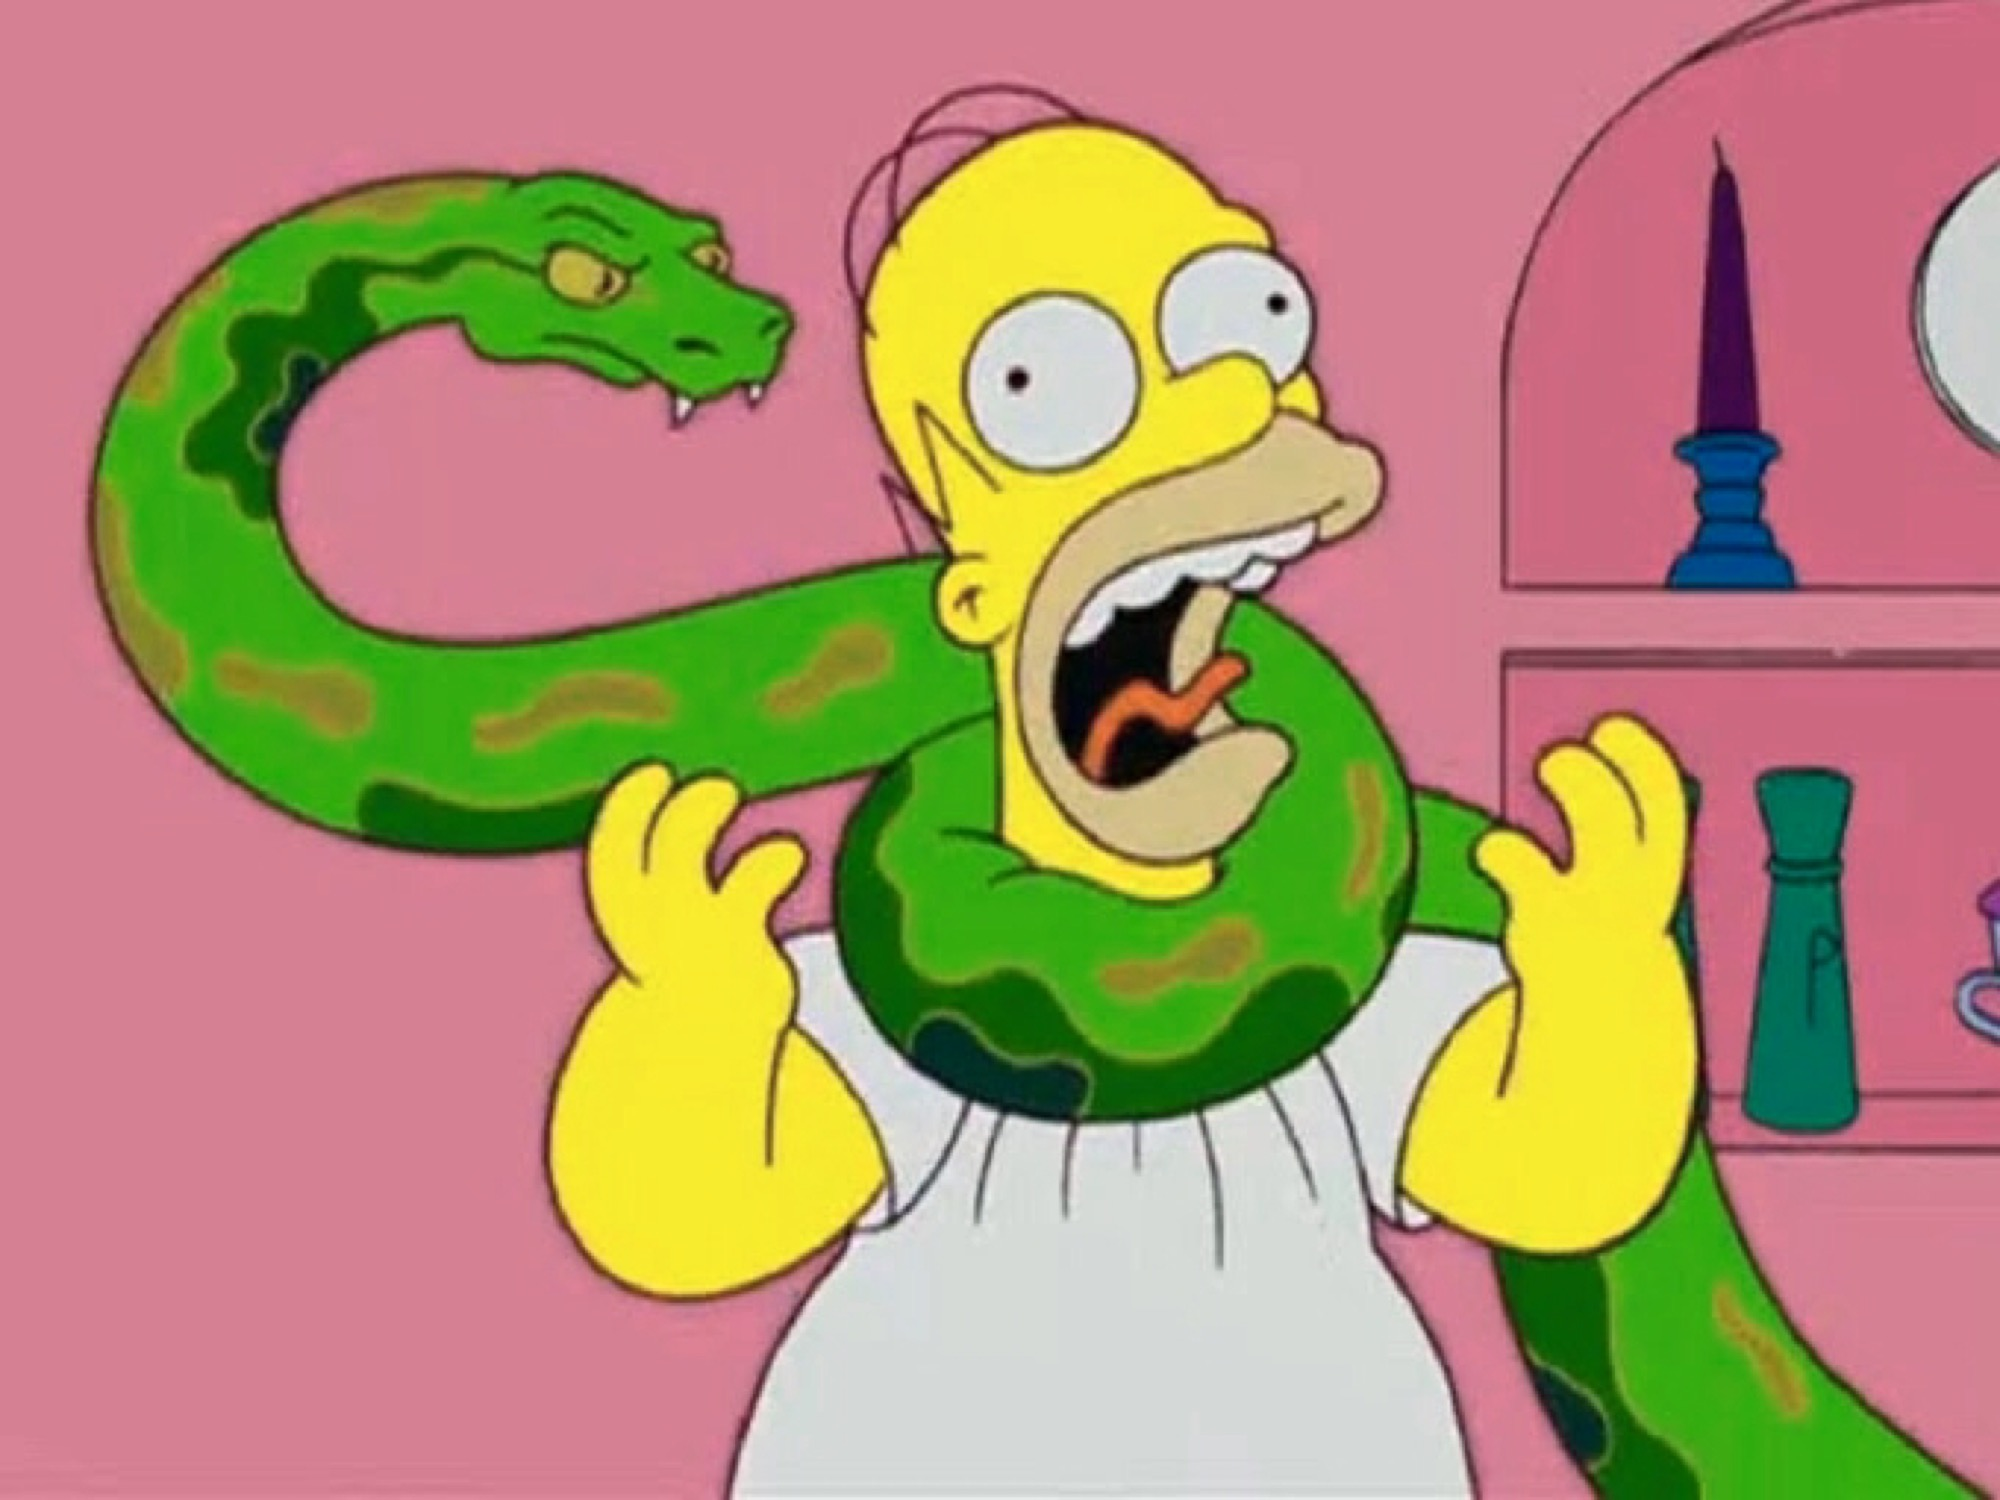 The simpsons got snake-24340